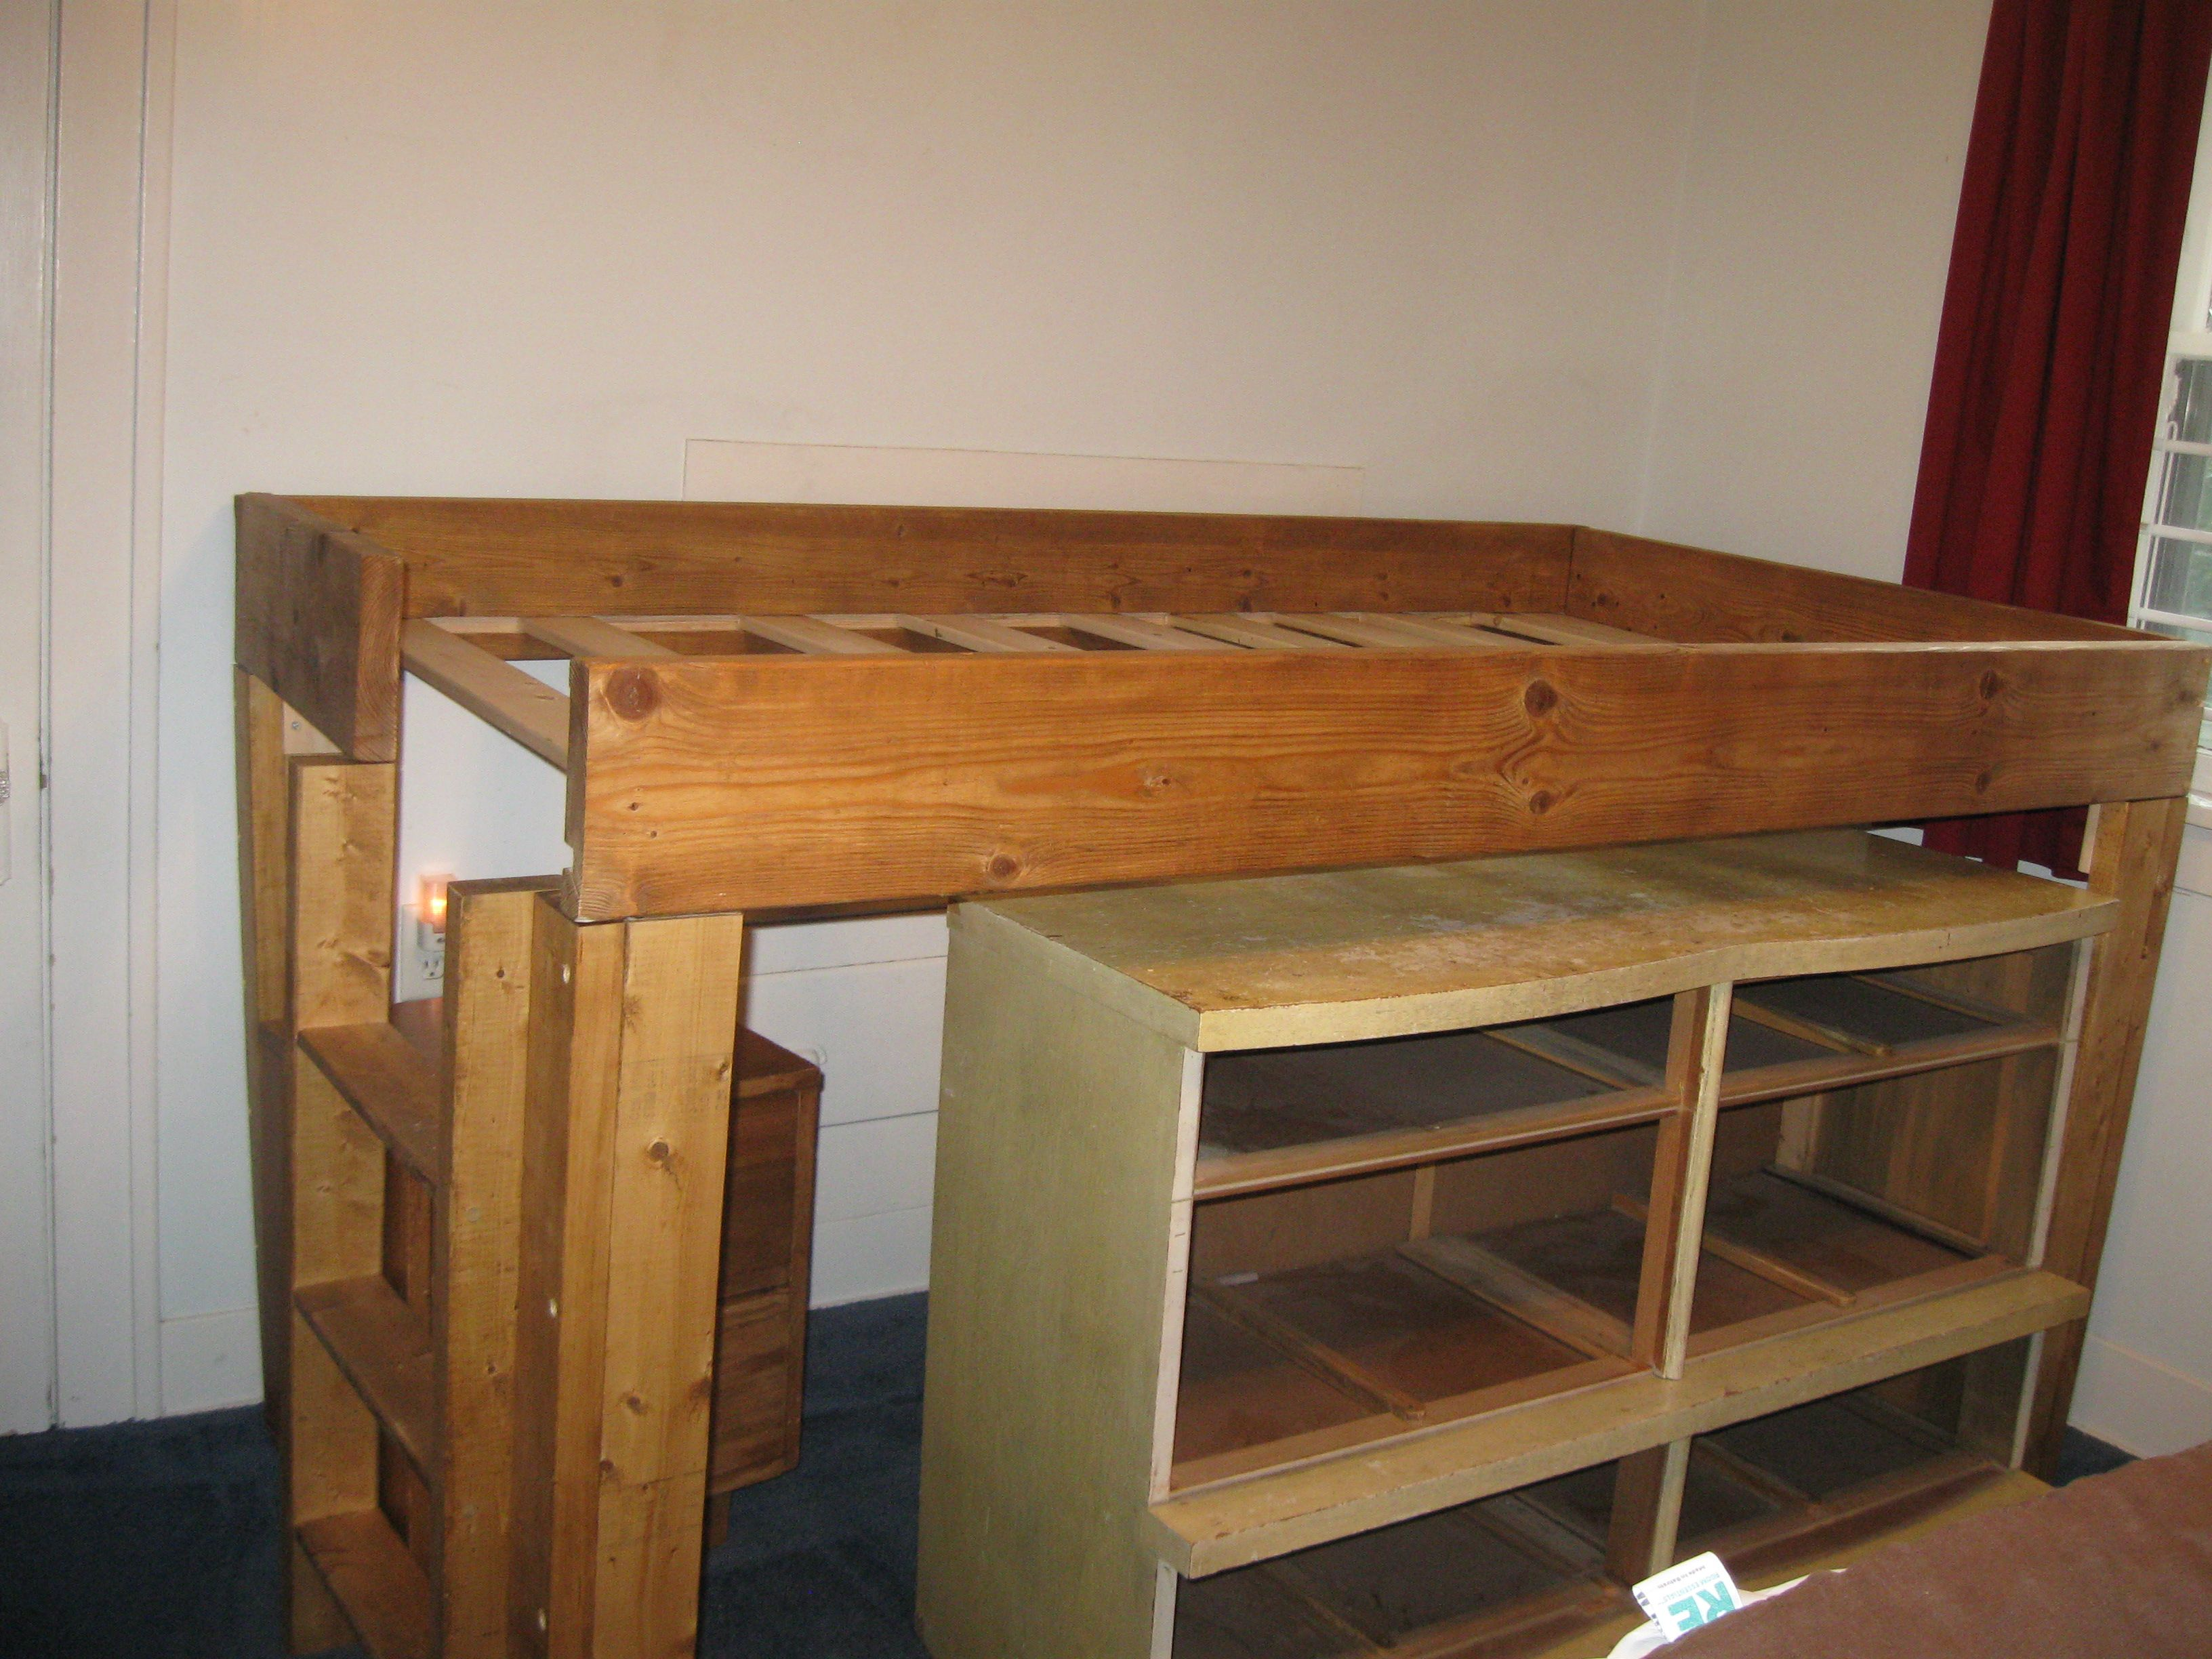 Homemade loft bed ideas  Homemade loft bed  not too tall  just right for saving space